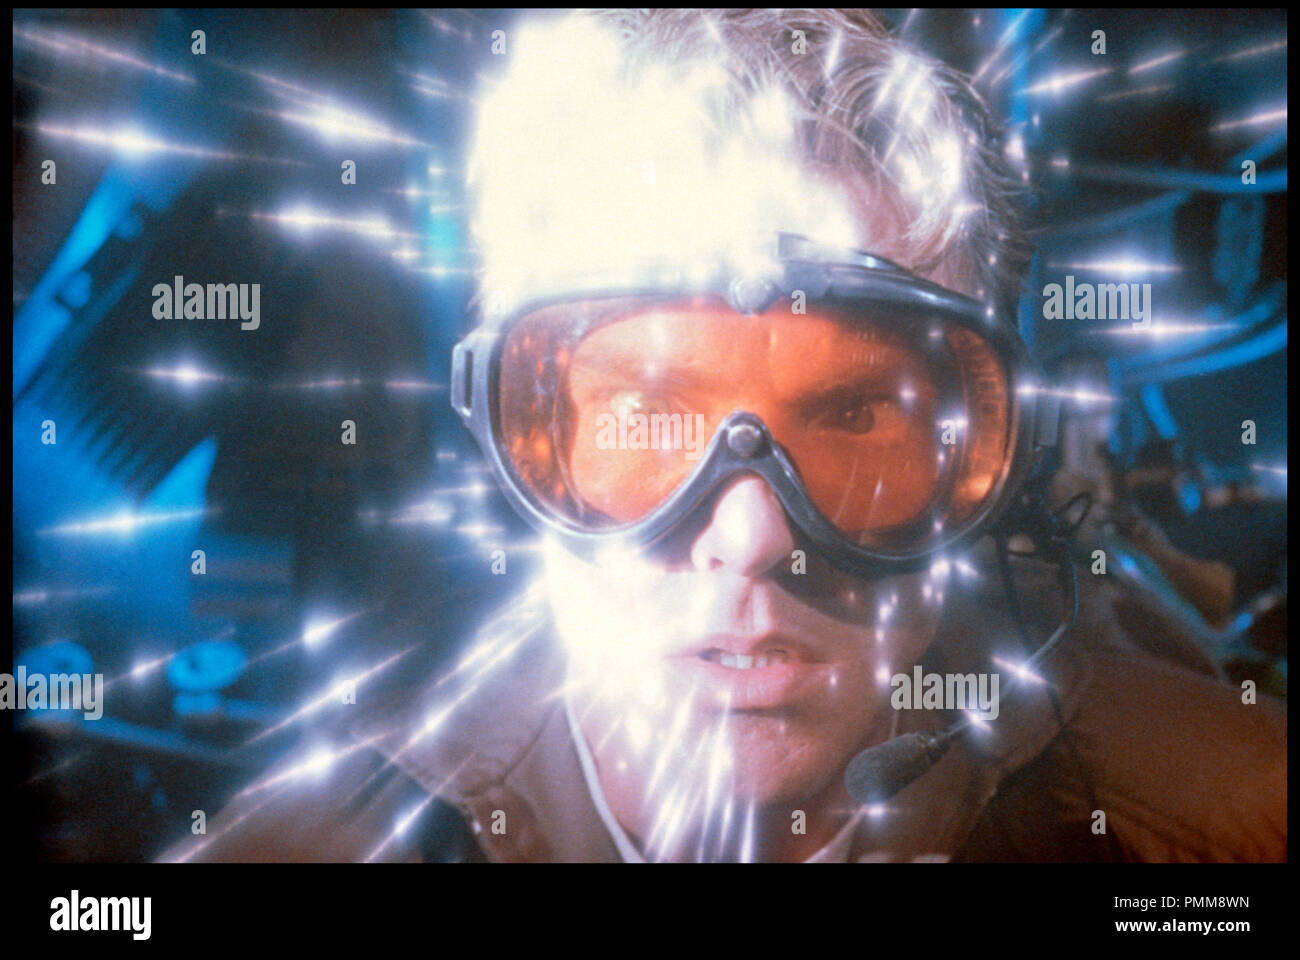 Prod DB © Amblin-Warner/ DR L'AVENTURE INTERIEURE (INNERSPACE) de Joe Dante 1987 USA avec Dennis Quaid science-fiction, irradiation, rayon, miniaturisation - Stock Image